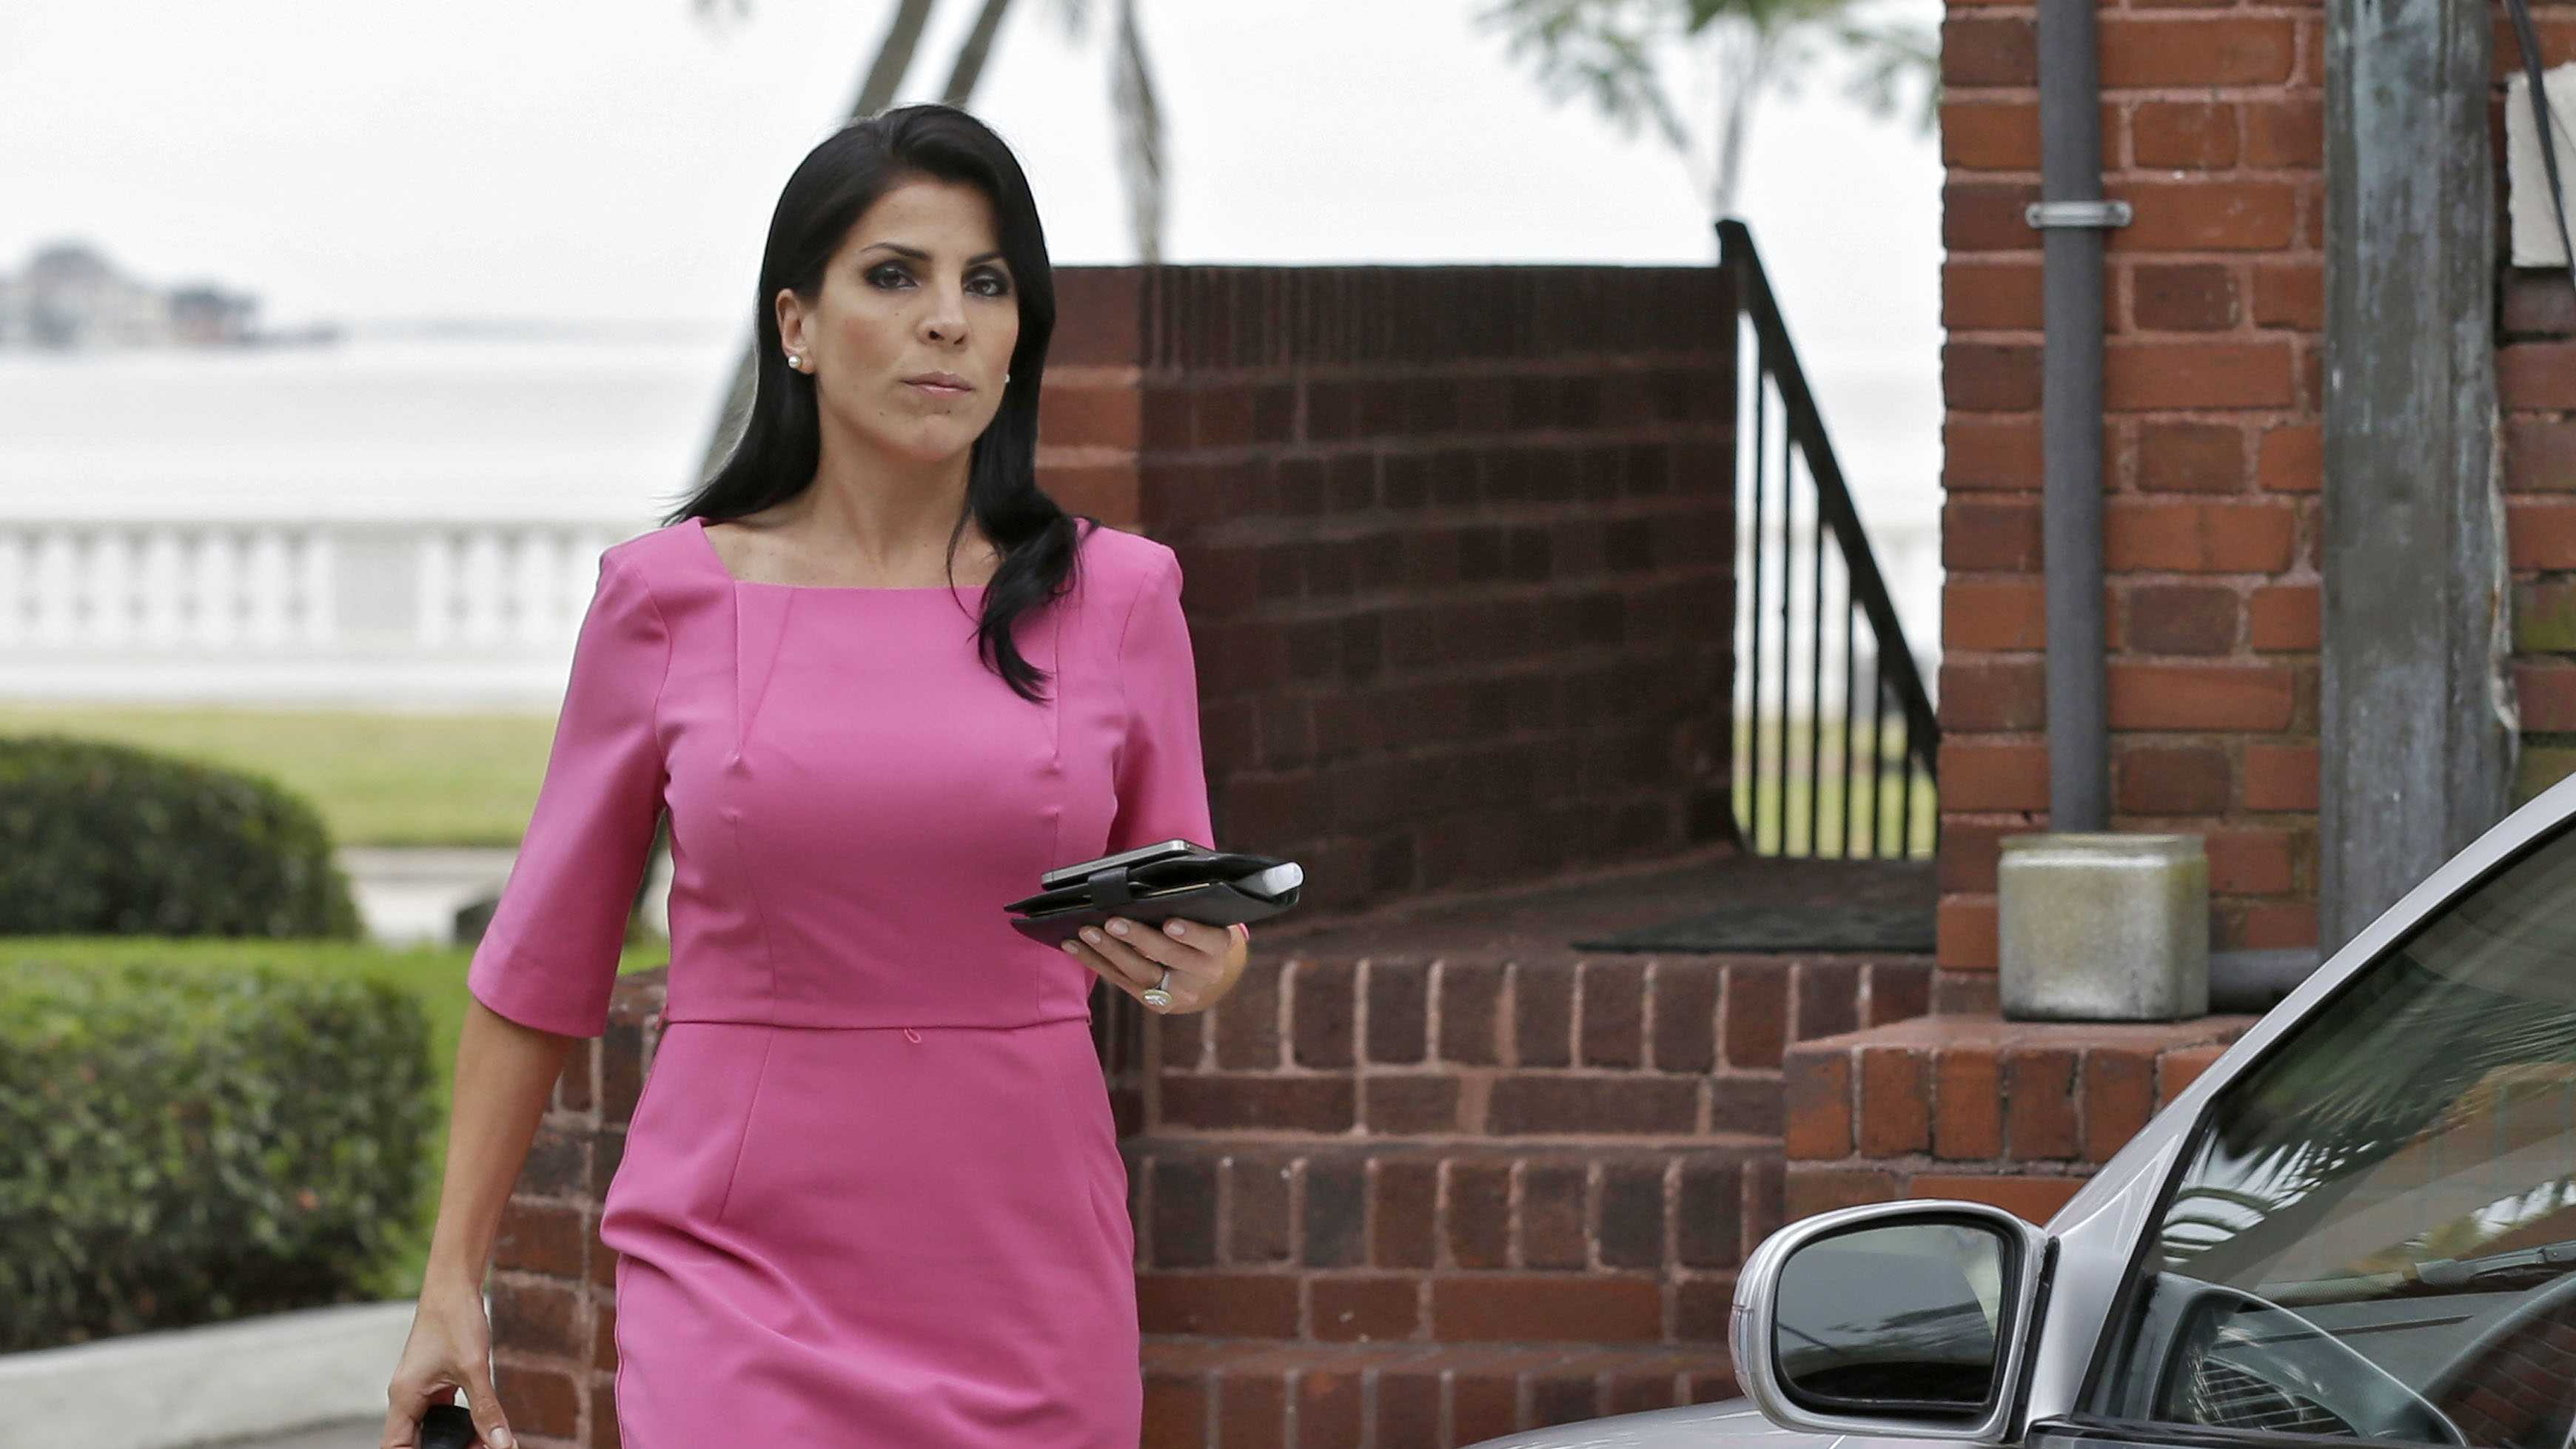 Jill Kelley leaves her home in Tampa, Fla. Kelley is identified as the woman who allegedly received harassing emails from Gen. David Petraeus' paramour, Paula Broadwell.